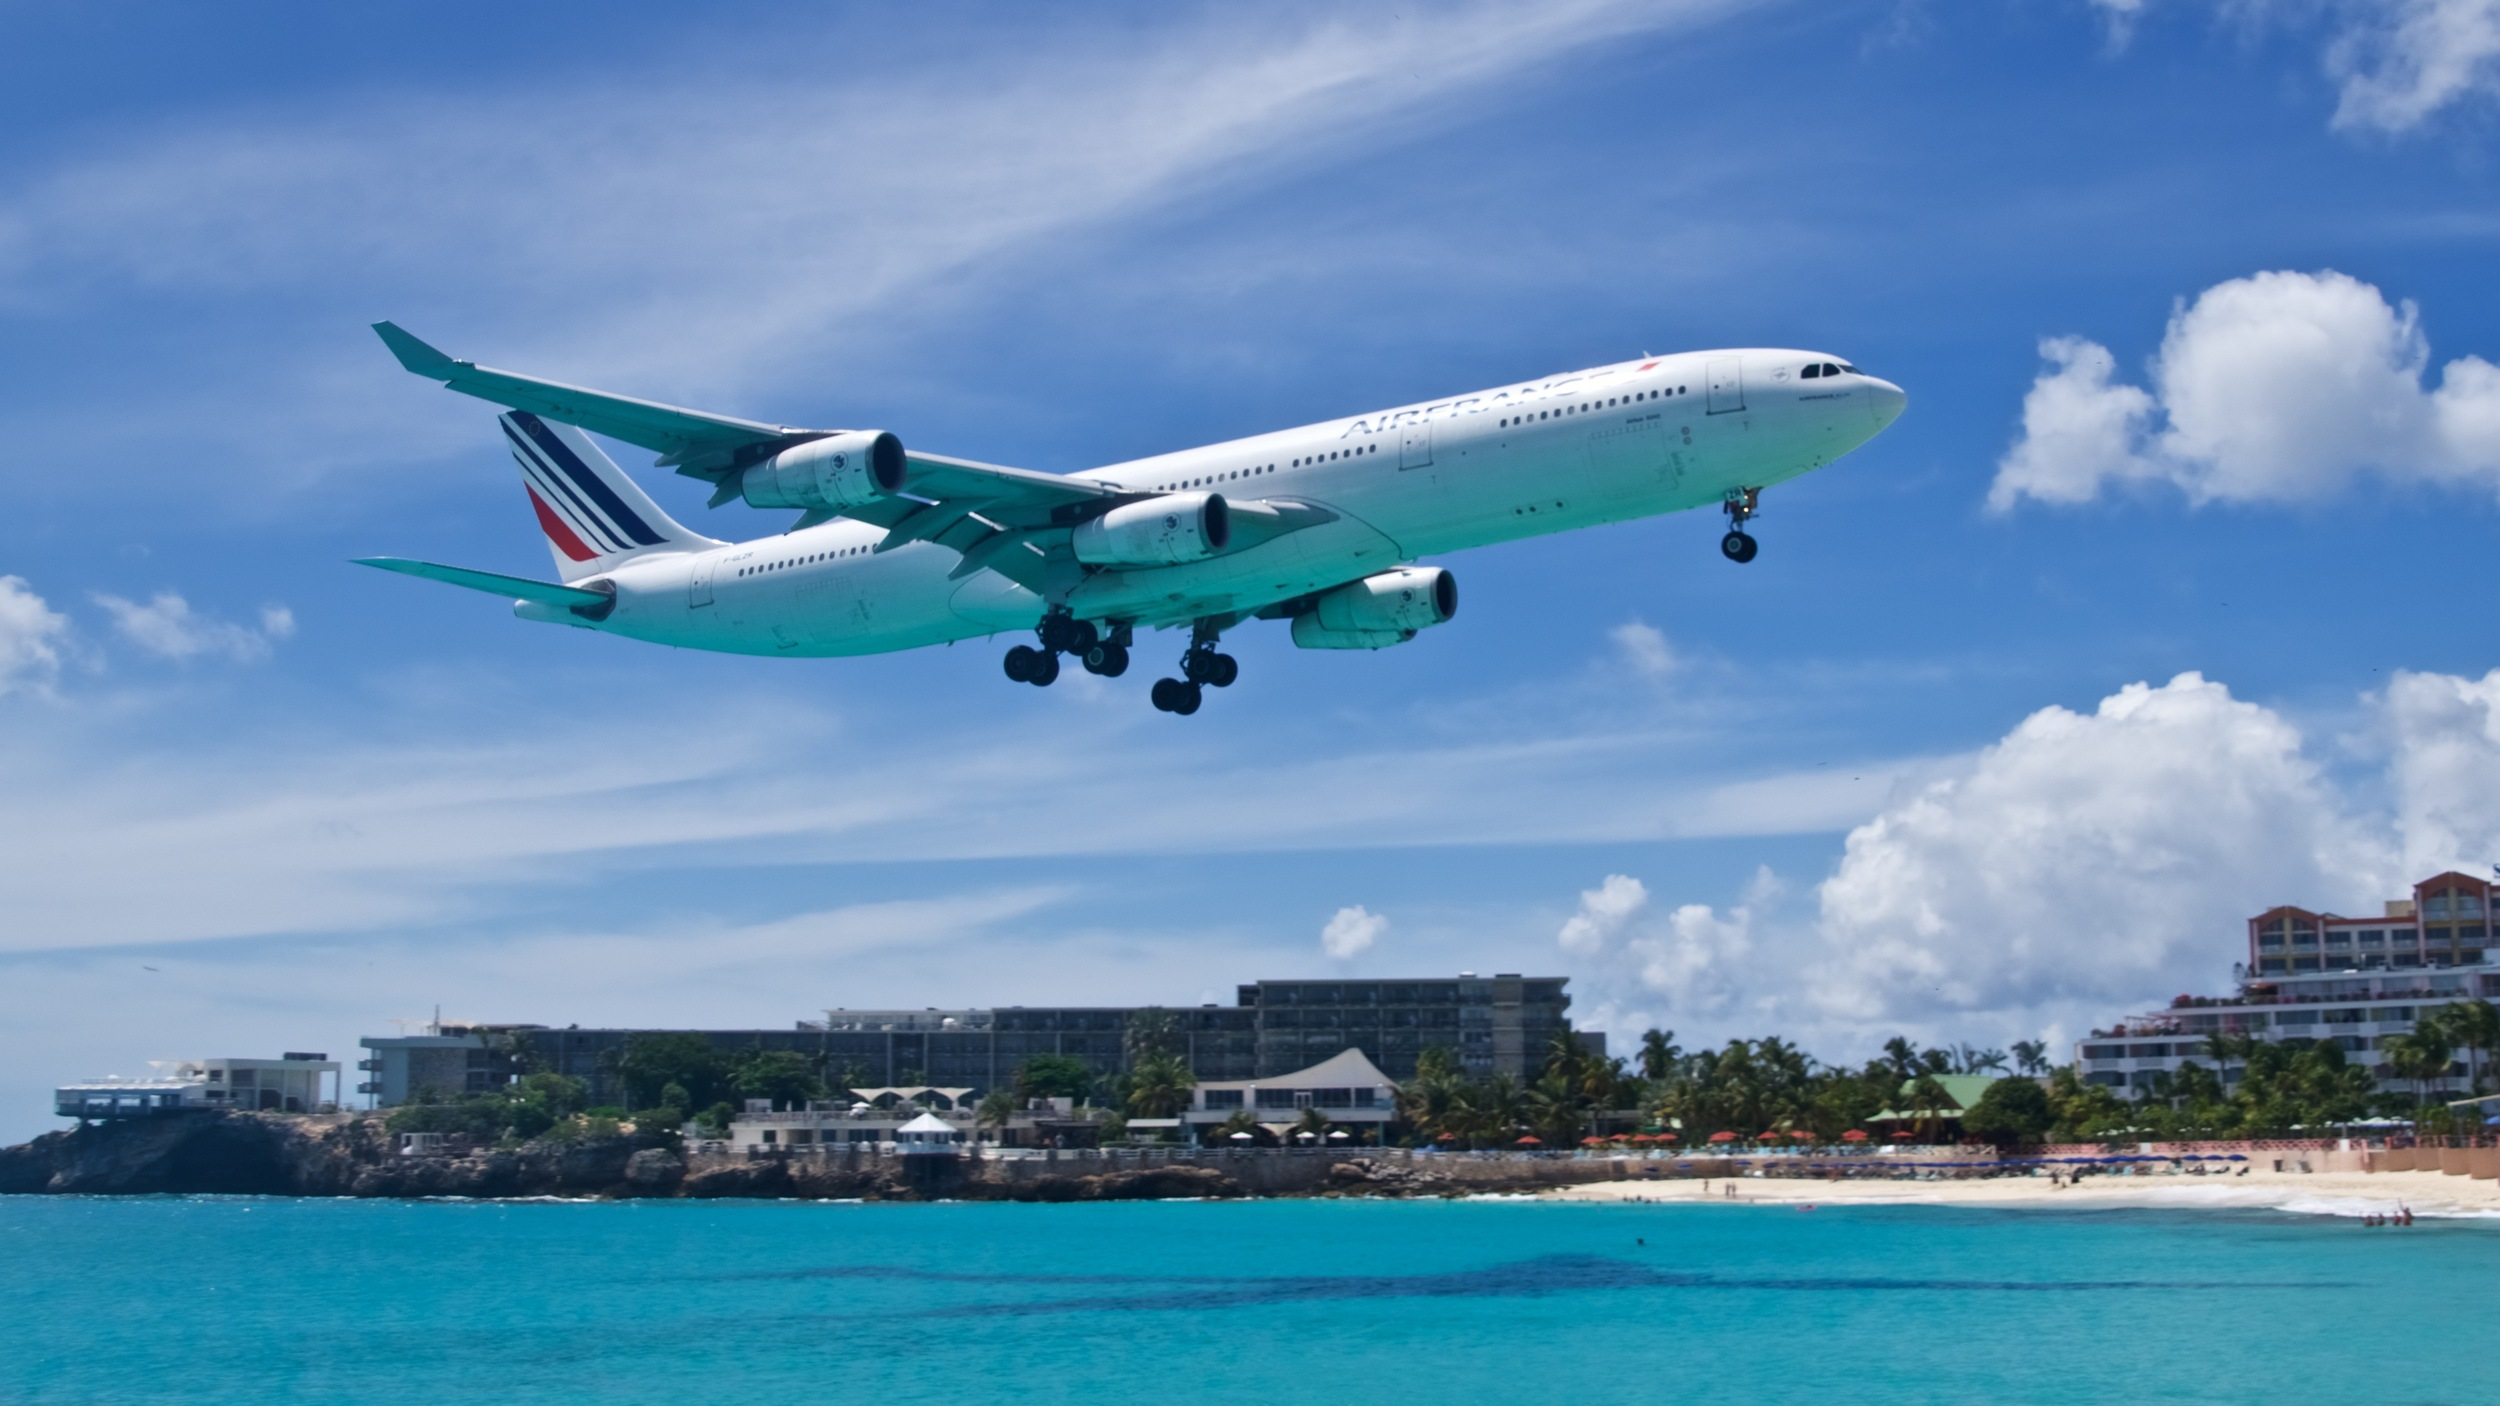 The view from the Sunset Bar & Grill, opposite is the Sonesta Ocean Point Resort, that boasts several panoramic terraces with views towards the airport approaches. Here pictured is the Air France daily flight from Paris, one of the most awaited moments by the spotters on Maho Beach. Picture:  Alain Duzant